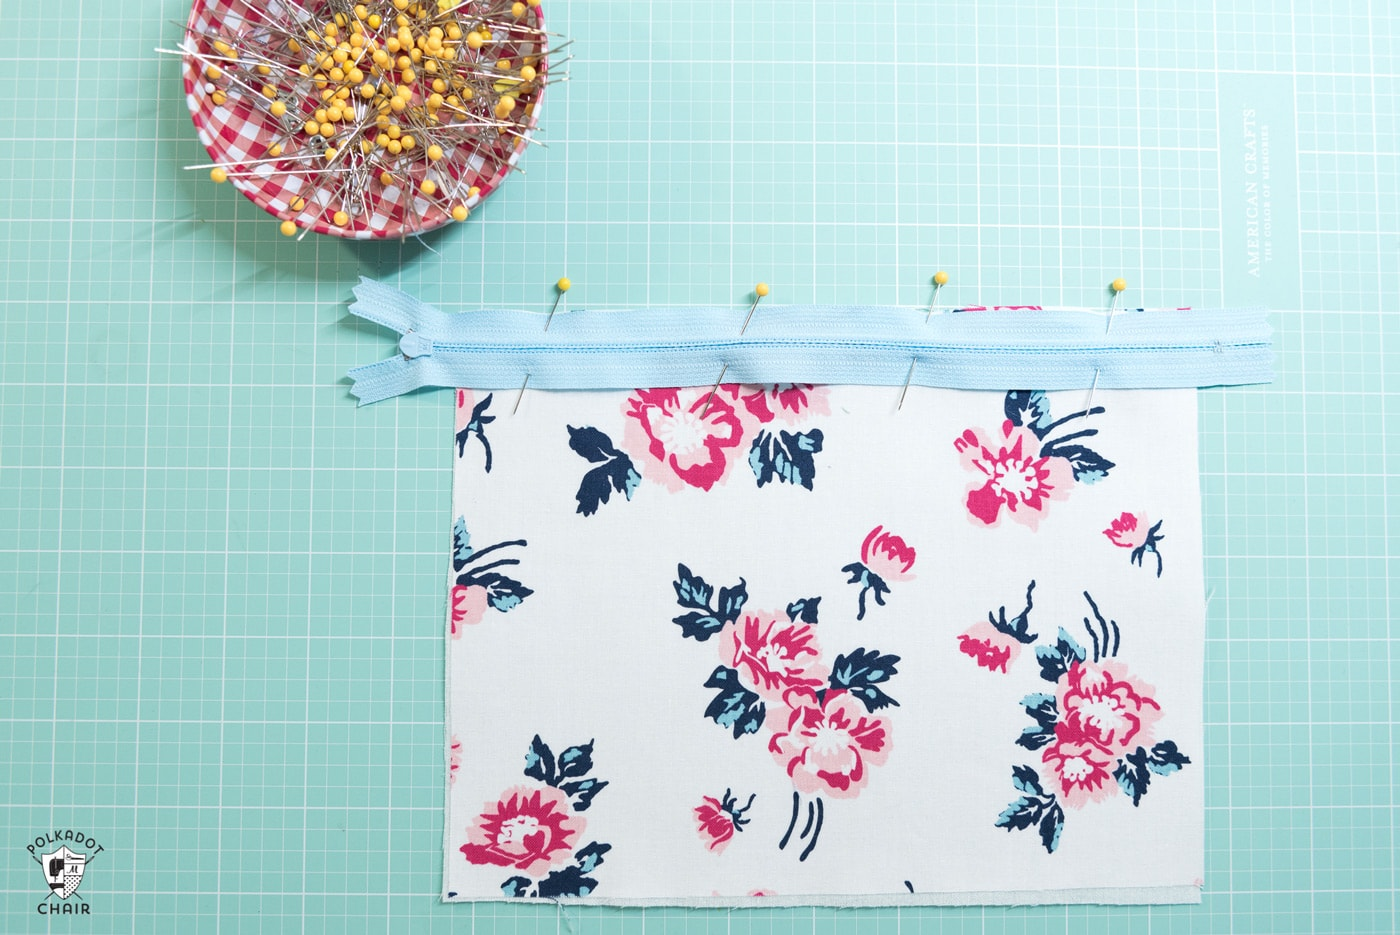 zipper pinned to fabric piece